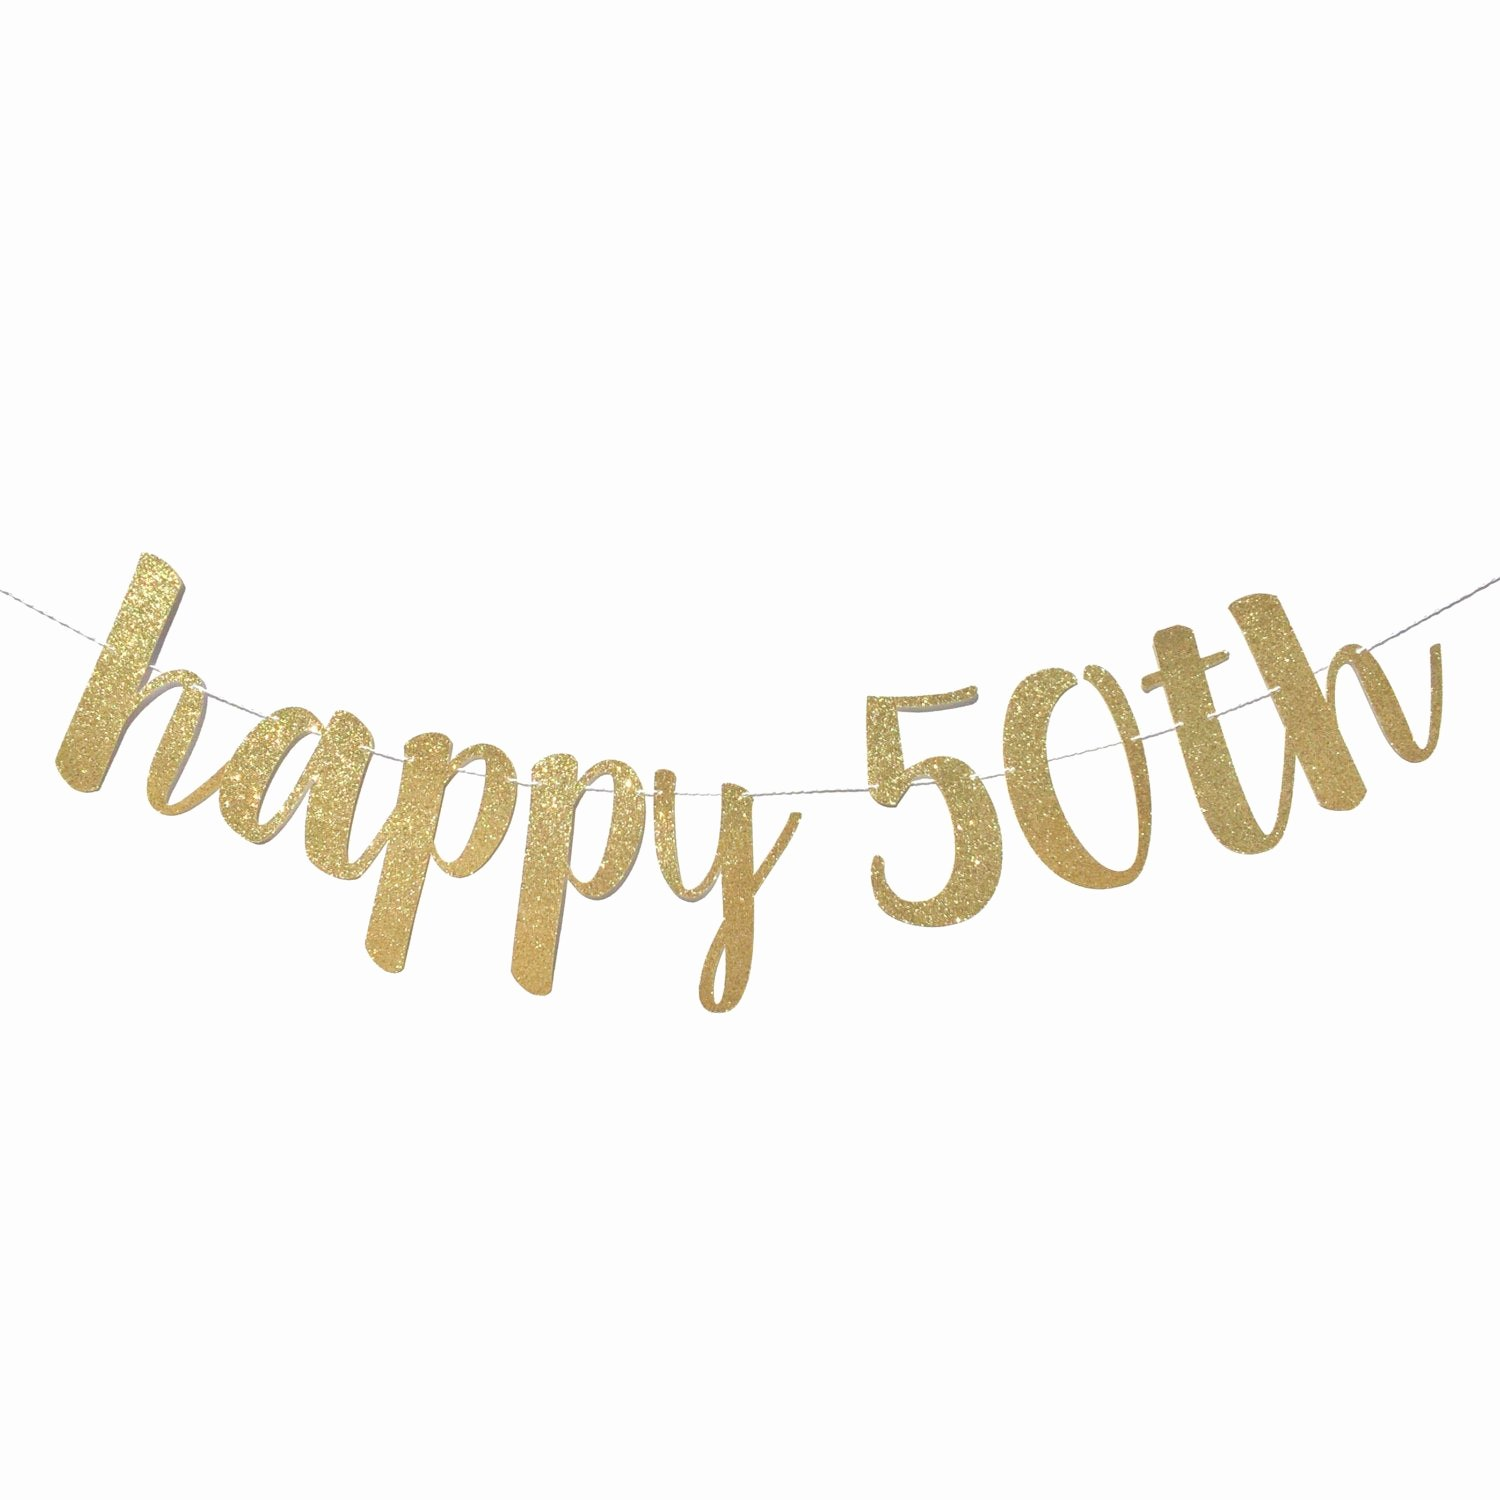 50th Birthday Banner Ideas Luxury 50th Birthday Decorations 50th Birthday Banner Happy